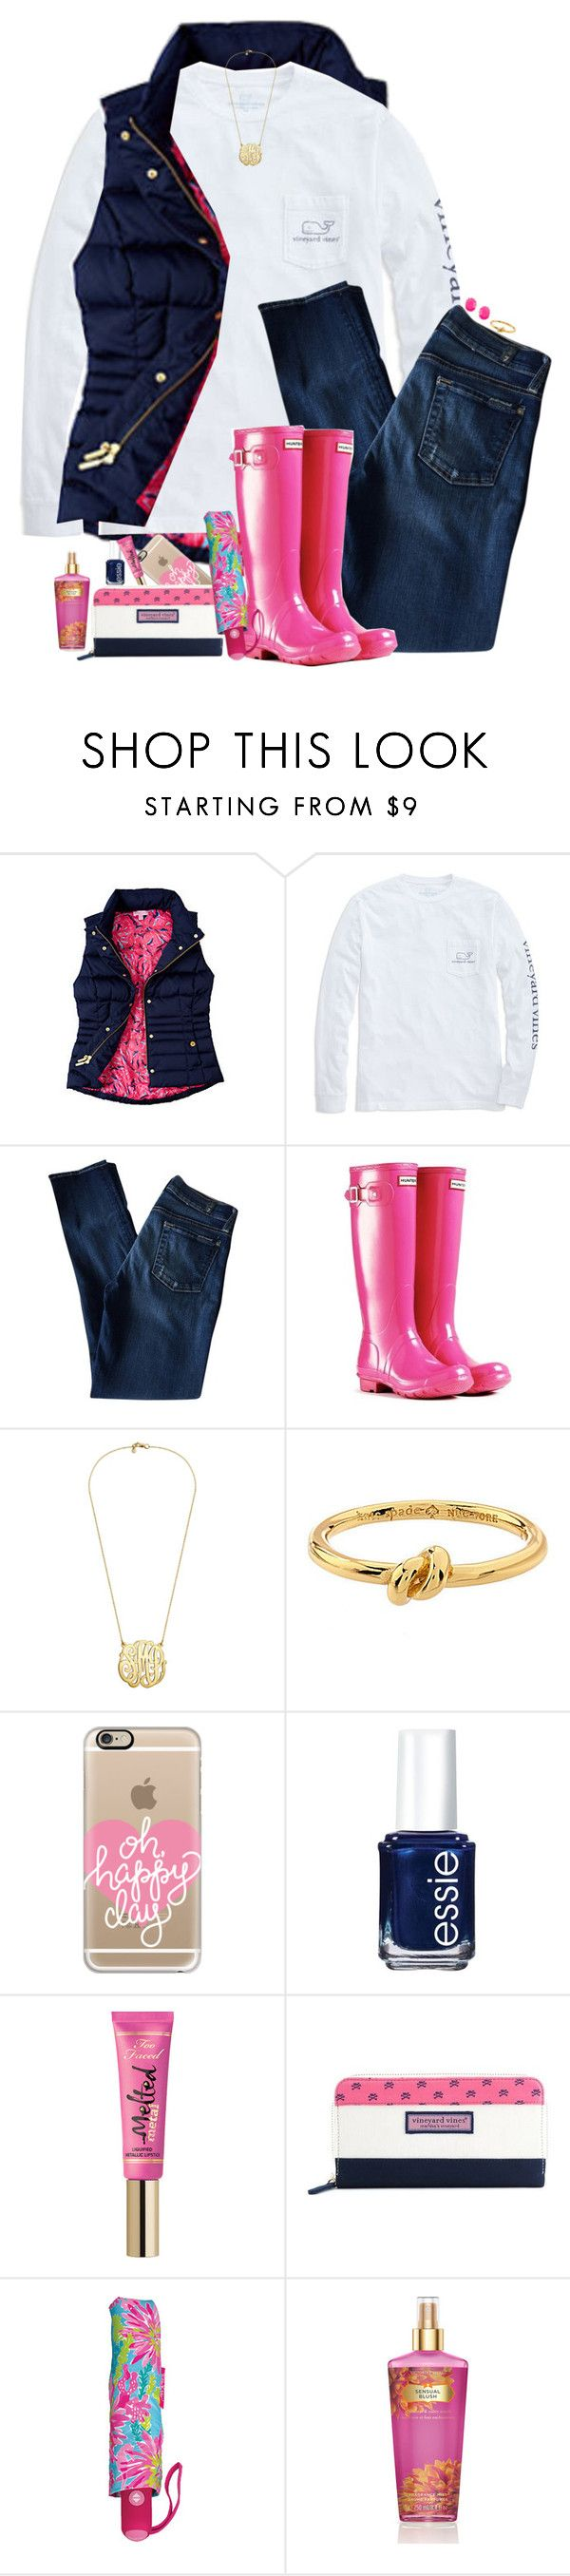 """""""It's Really Rainy Out Today"""" by teamboby ❤ liked on Polyvore featuring Vineyard Vines, 7 For All Mankind, Kendra Scott, Kate Spade, Casetify, Essie, Too Faced Cosmetics, Lilly Pulitzer and Victoria's Secret"""